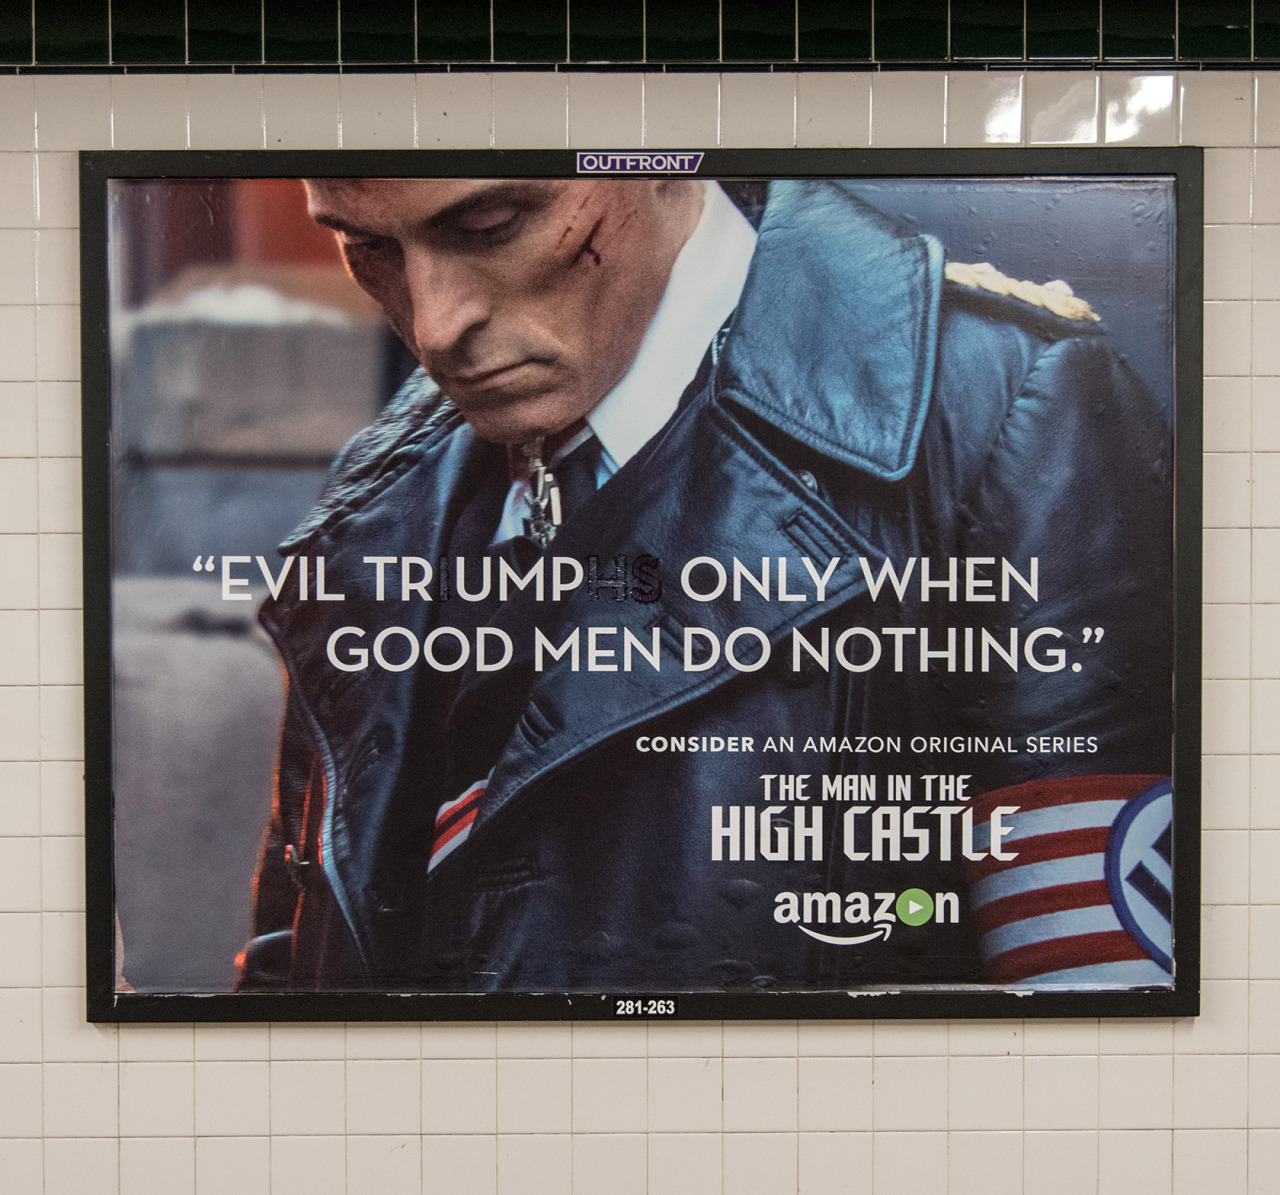 Slightly revised subway ad in Queens, NYC.